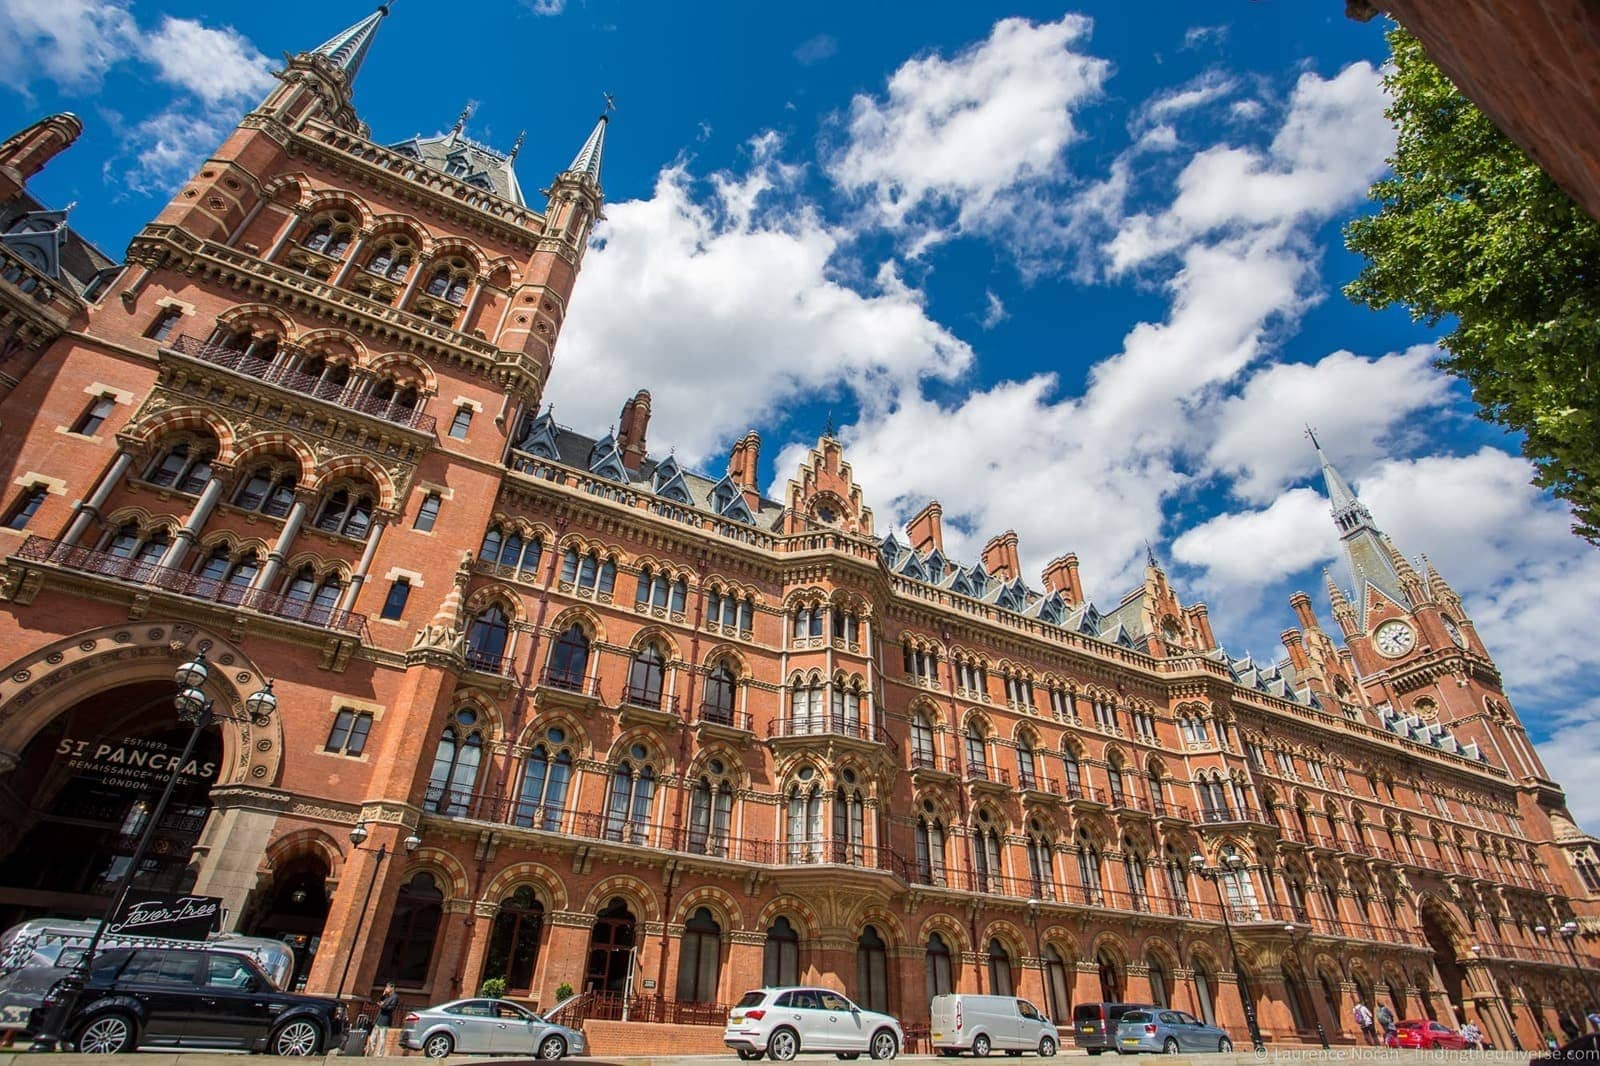 Harry Potter Filming Location London - St Pancras